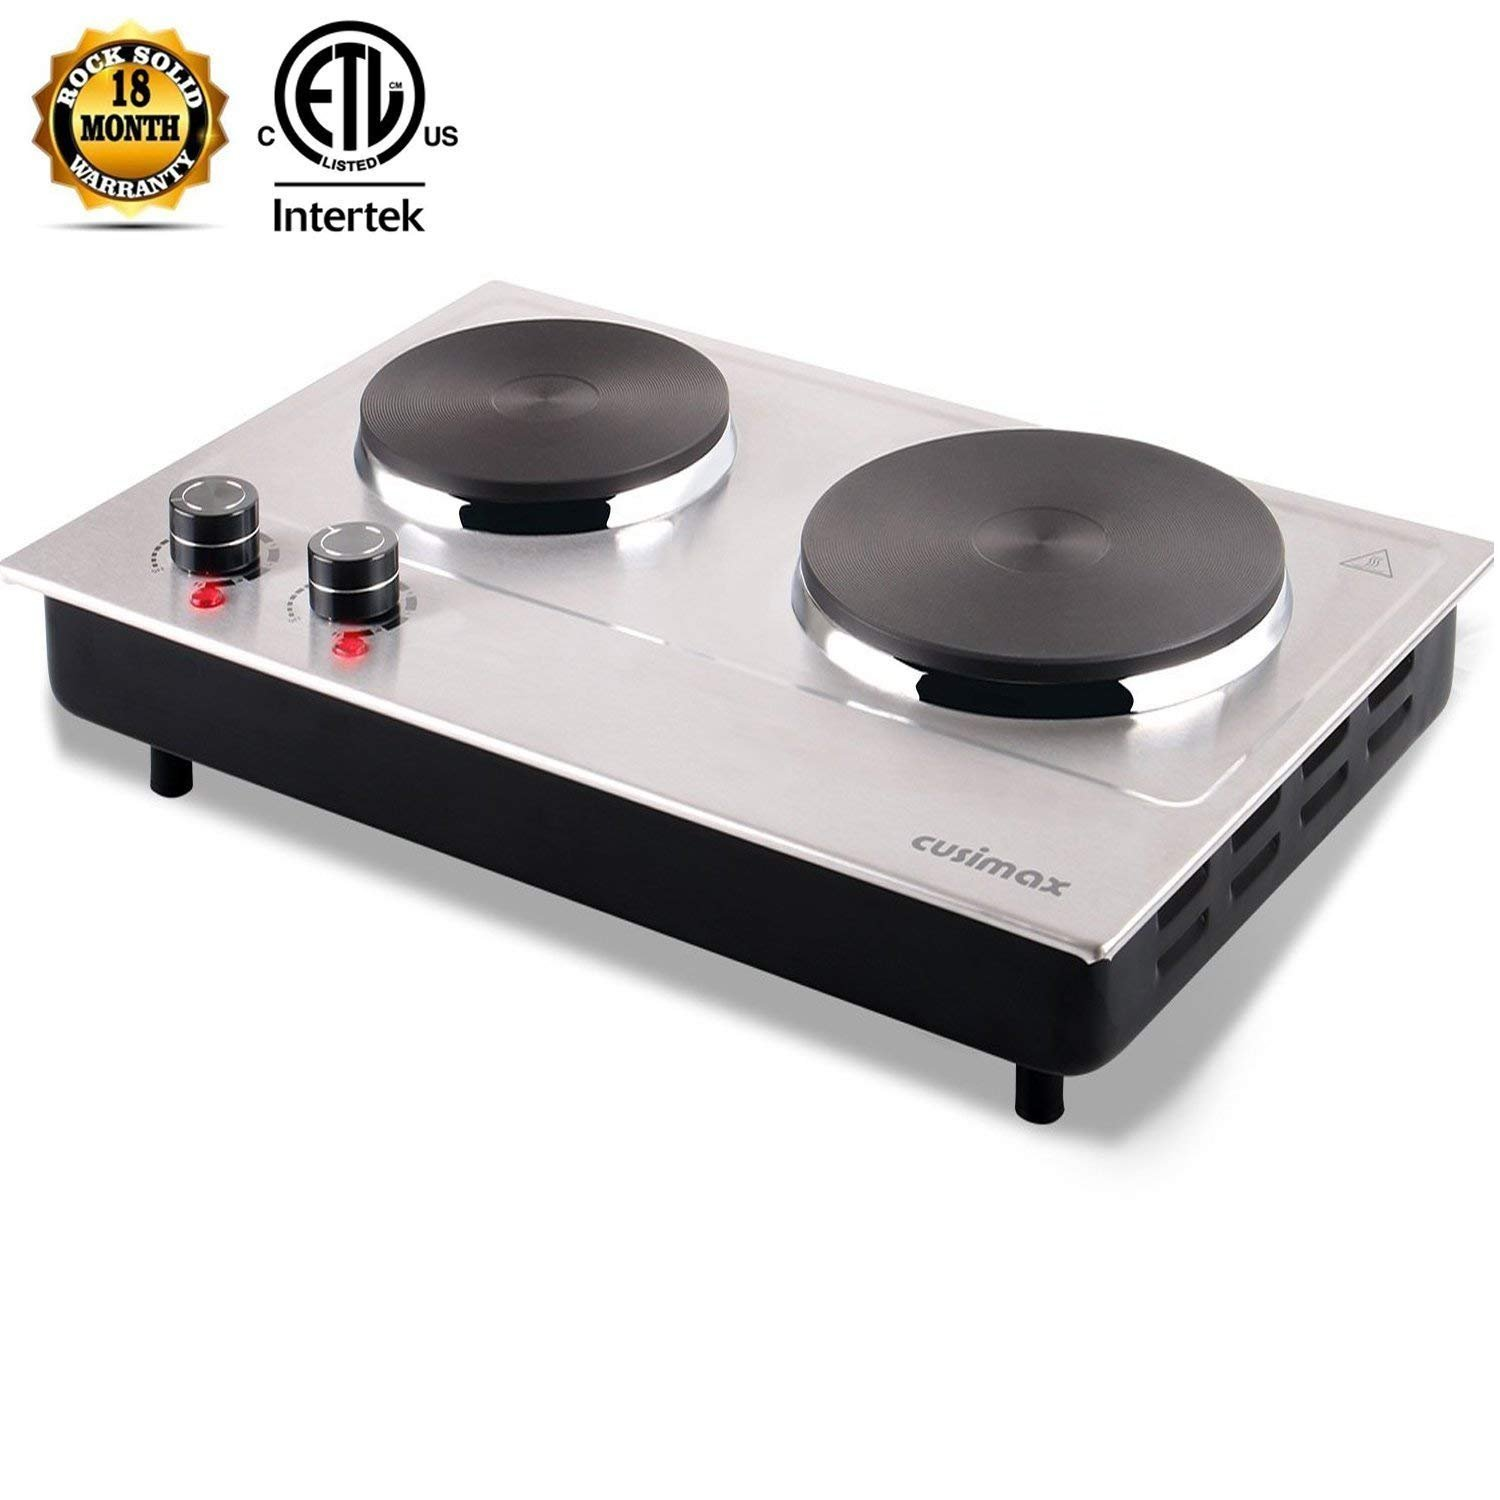 Cusimax 1800W Hot Plate for Cooking Electric - Double Electric Burner - Stainless Electric Stove - Upgraded - CMHP-C180N